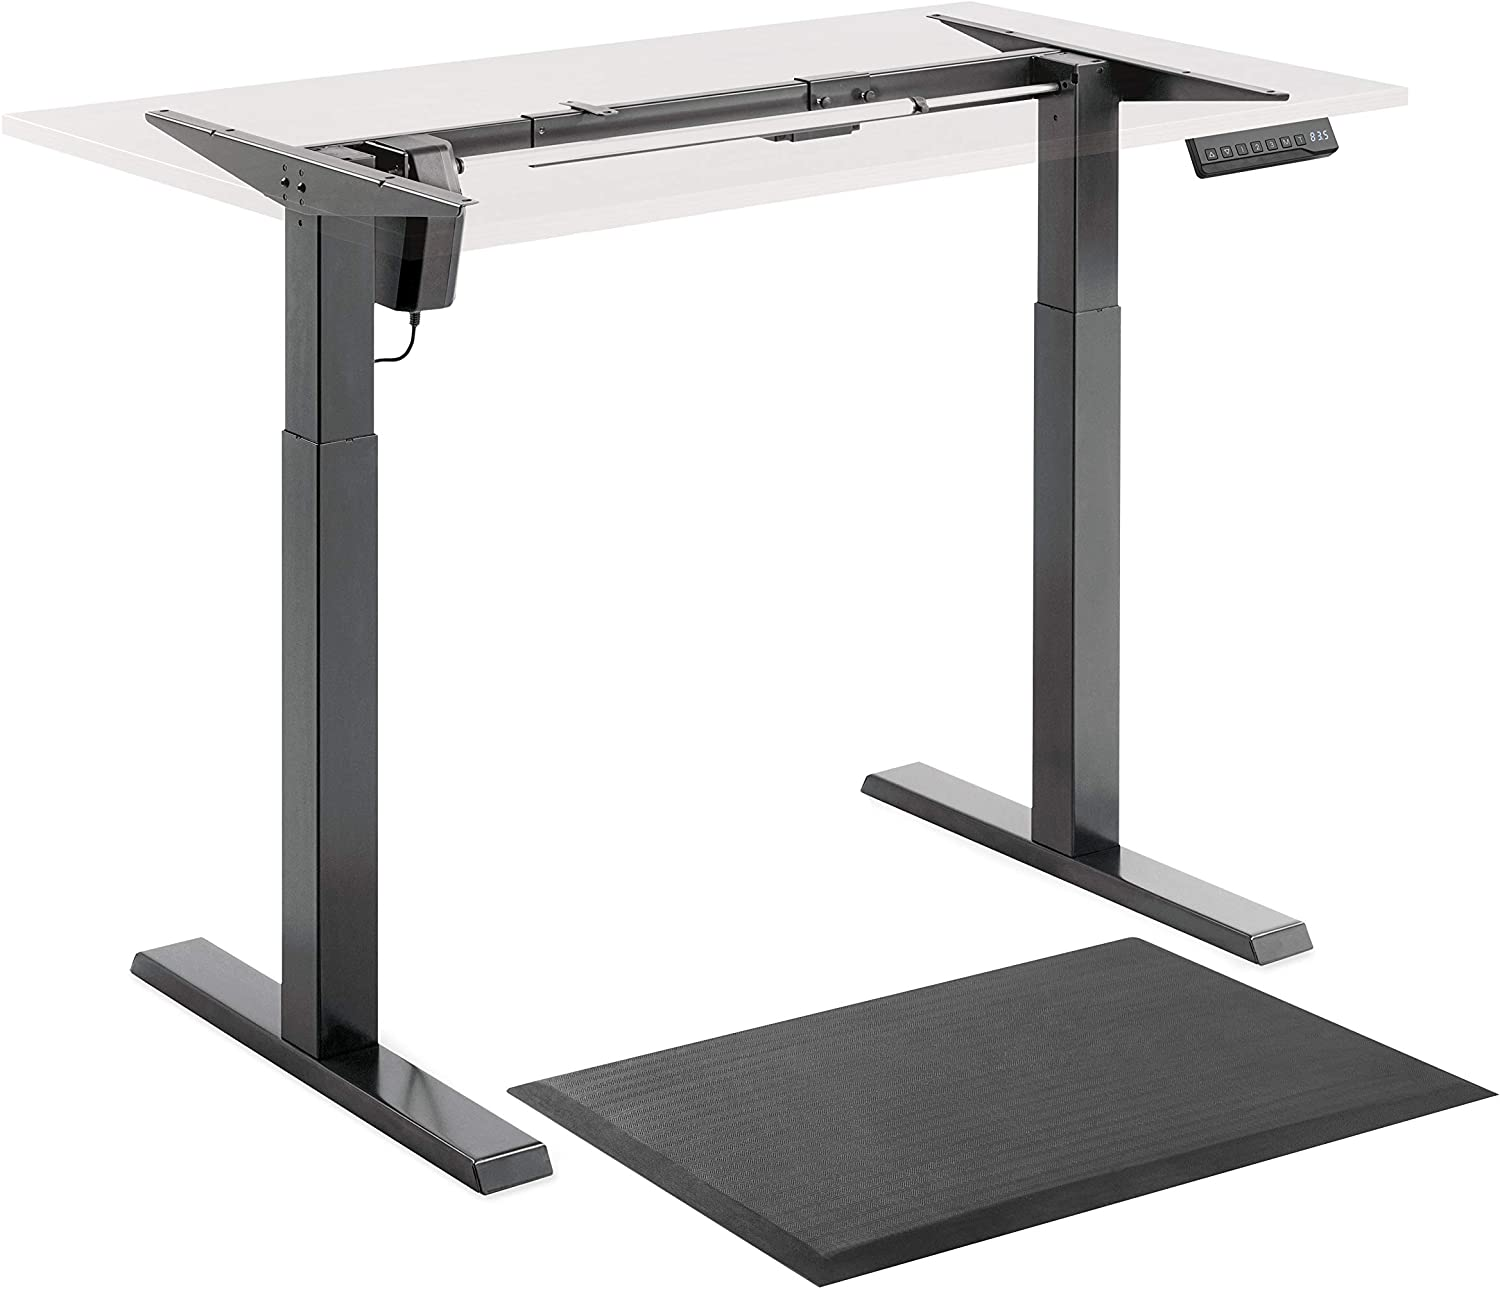 Electric Stand Up Desk Frame Single Motor Standing Desk Base Height Adjustable Table DIY Sit Stand Desk with Antifatigue Mat Electronic Memory Controller Steel Legs for Computer Office Workstation